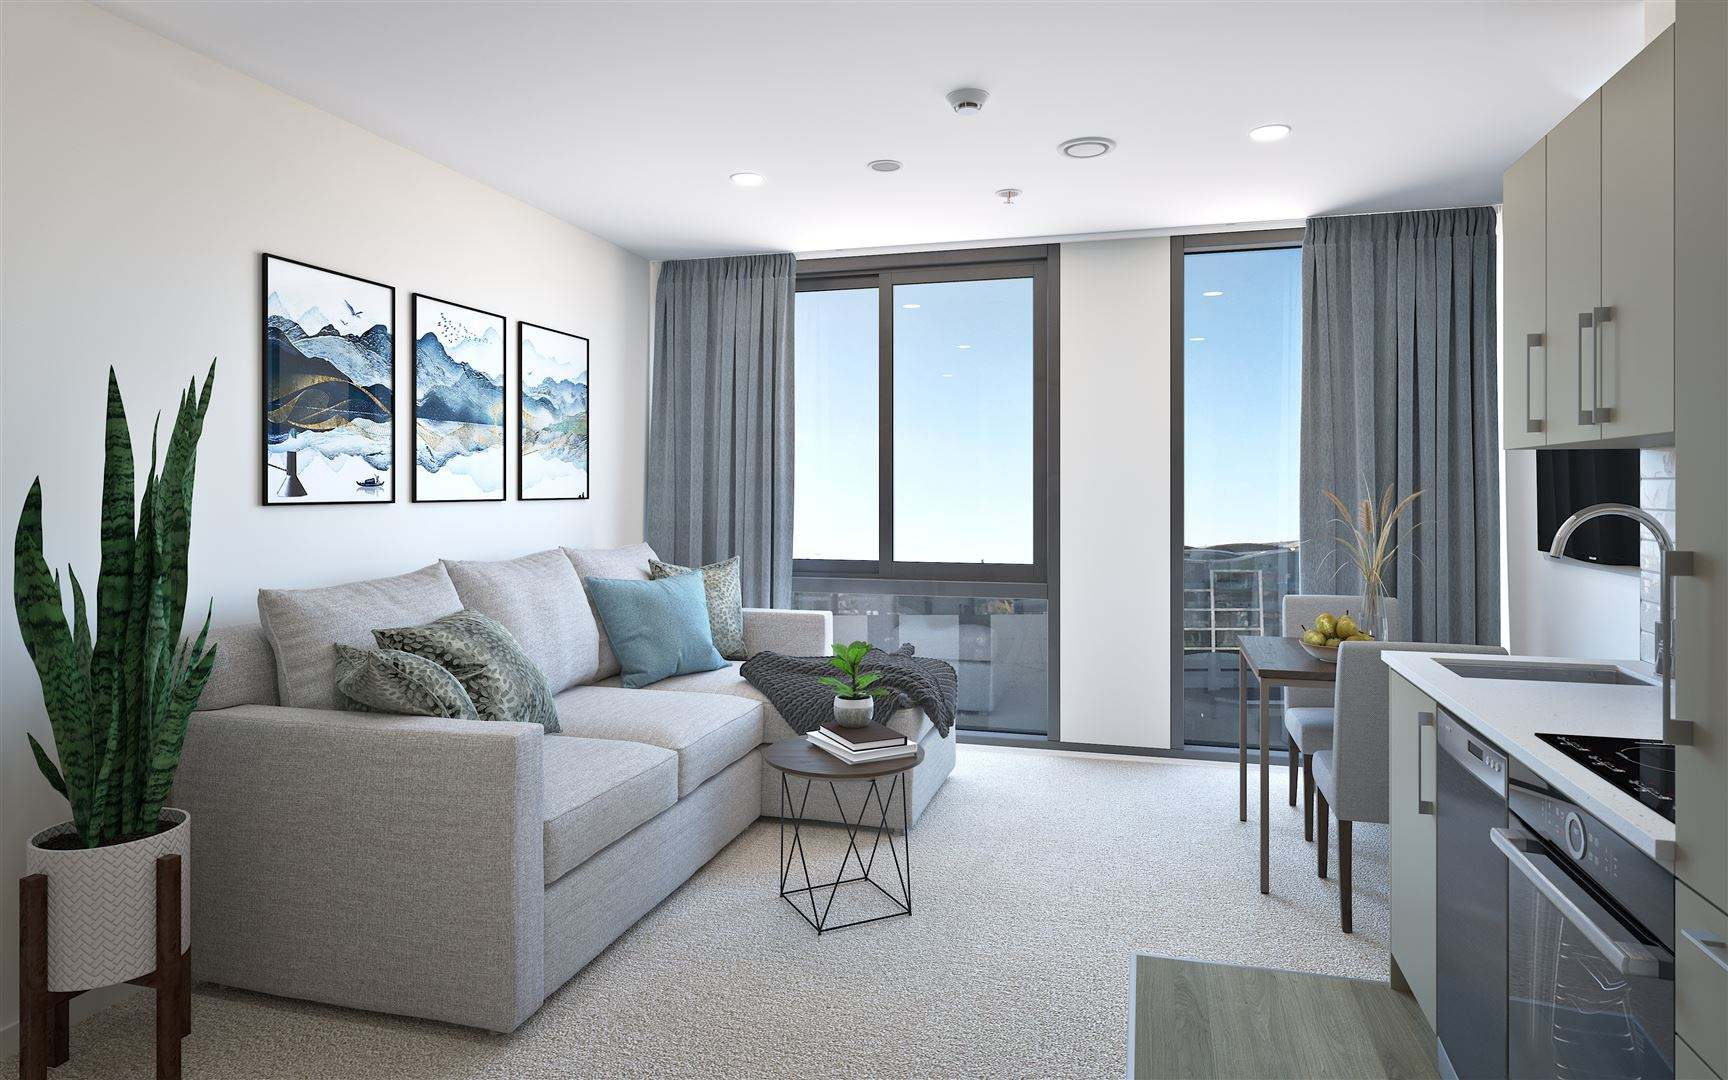 Te Aro 2房 New Dual Key Apartment Available for Viewing Now!